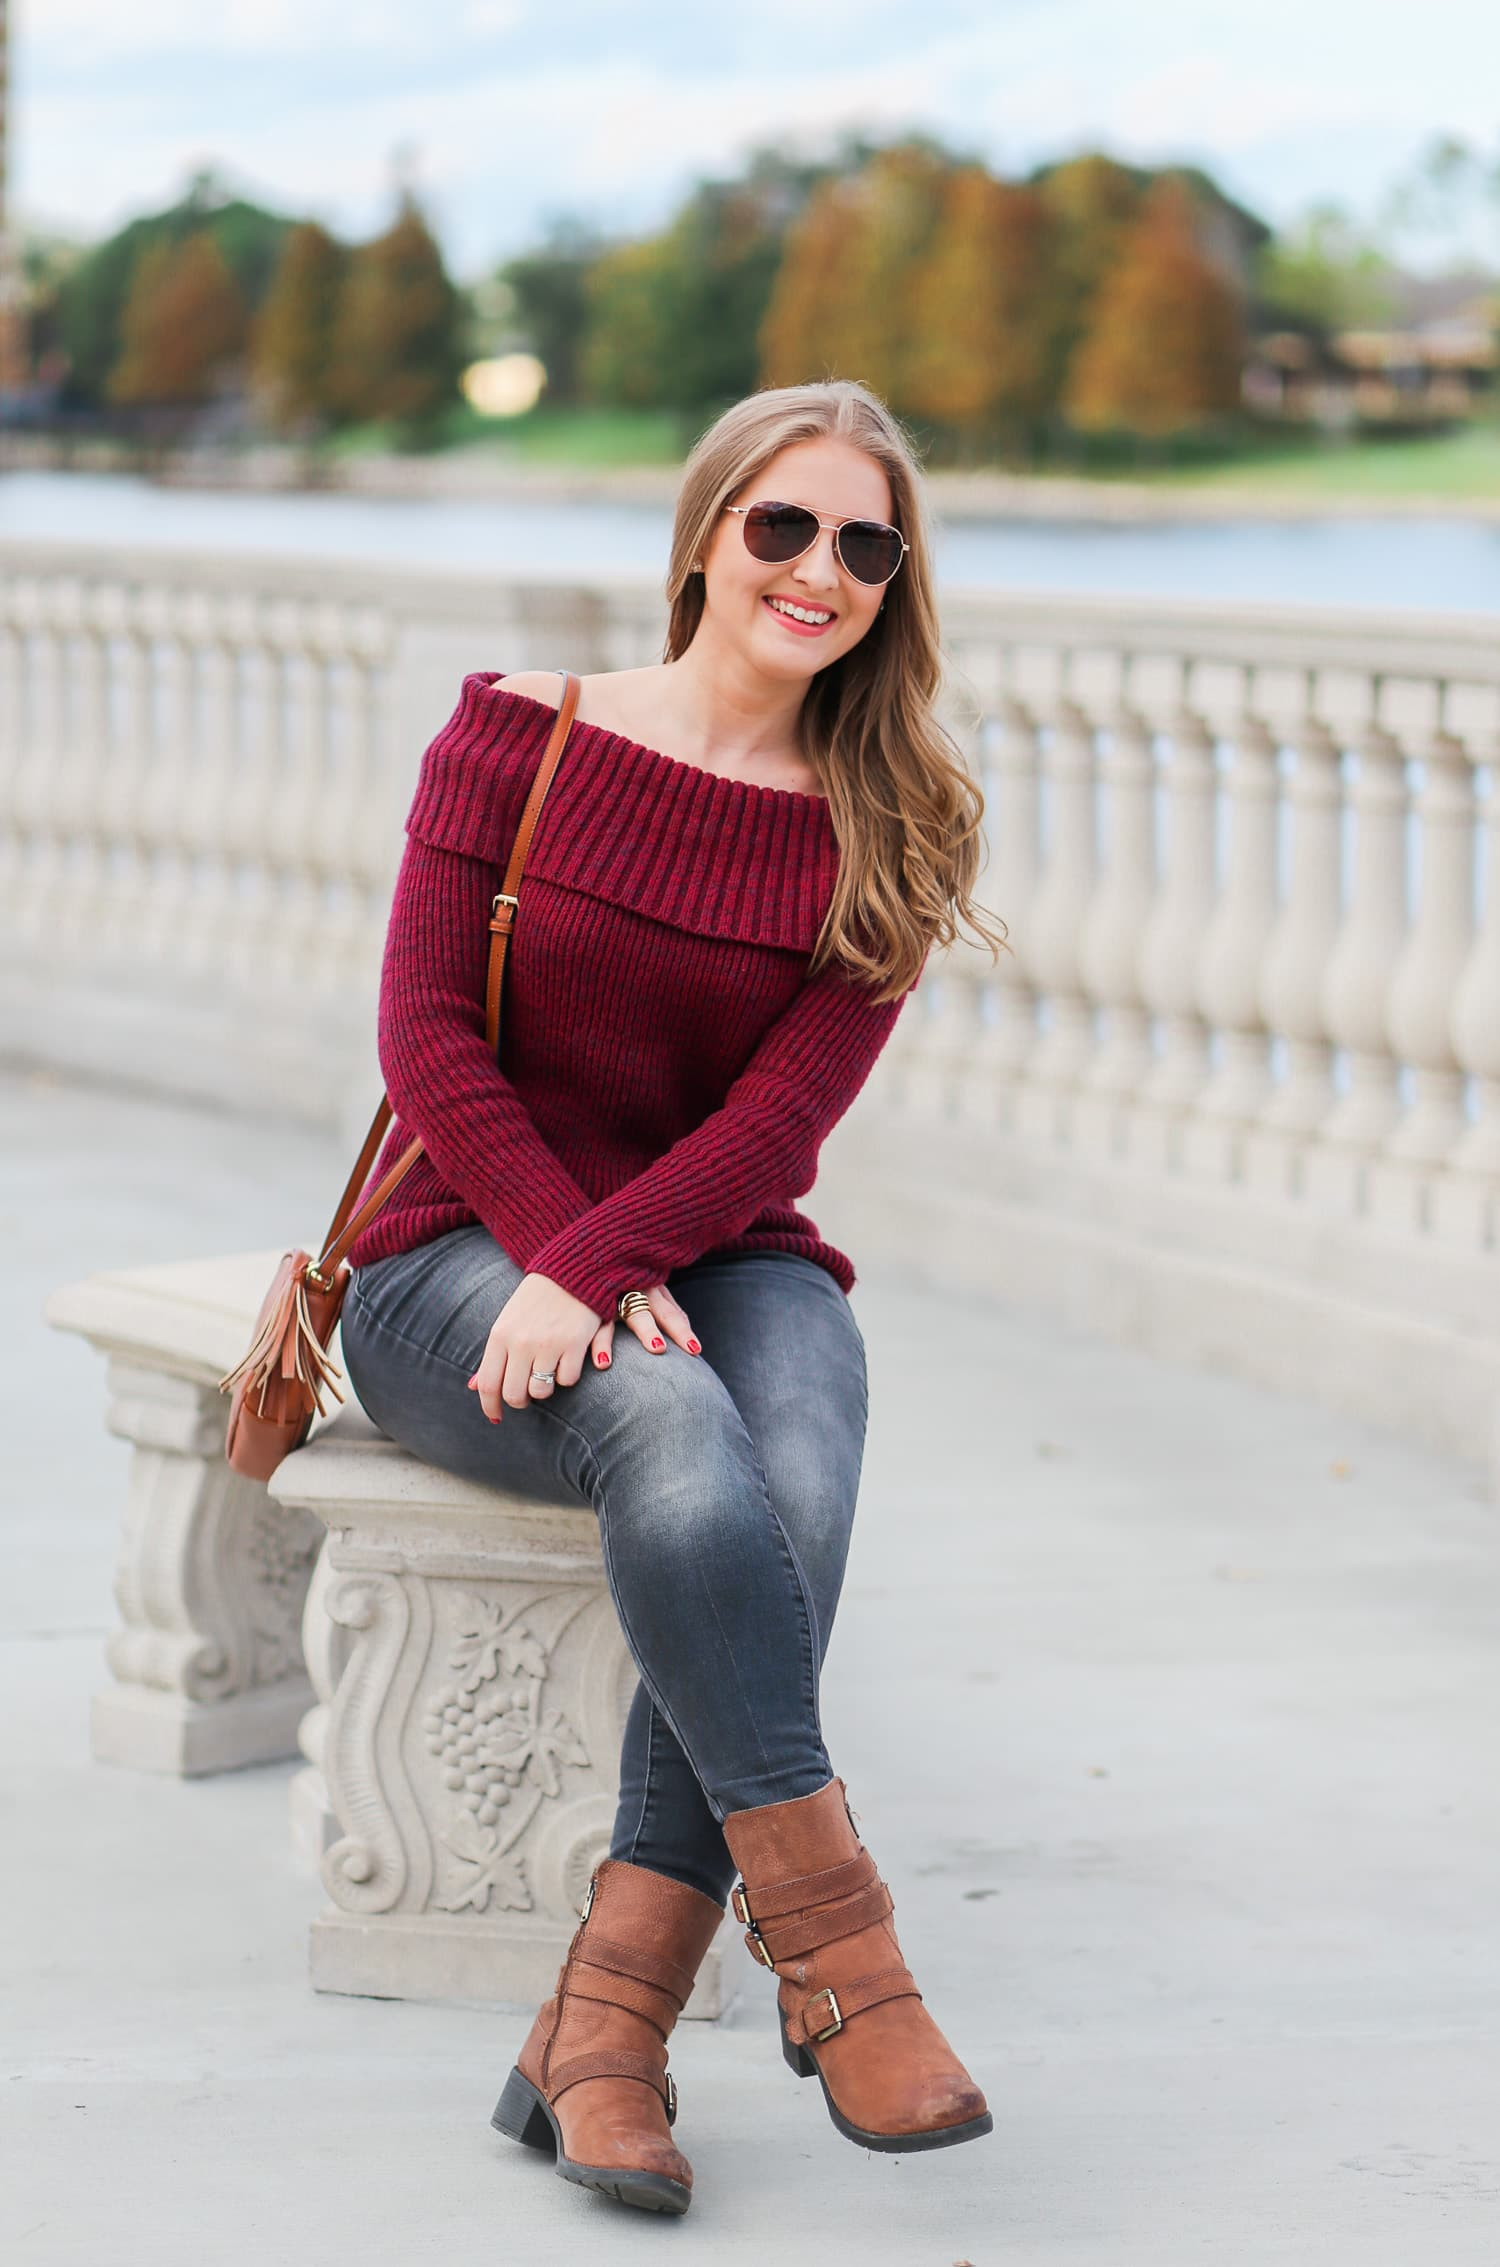 casual-winter-outfit-off-the-shoulder-sweater-gray-jeggins-moto-boots-foster-grant-rose-gold-aviator-sunglasses-7715-2